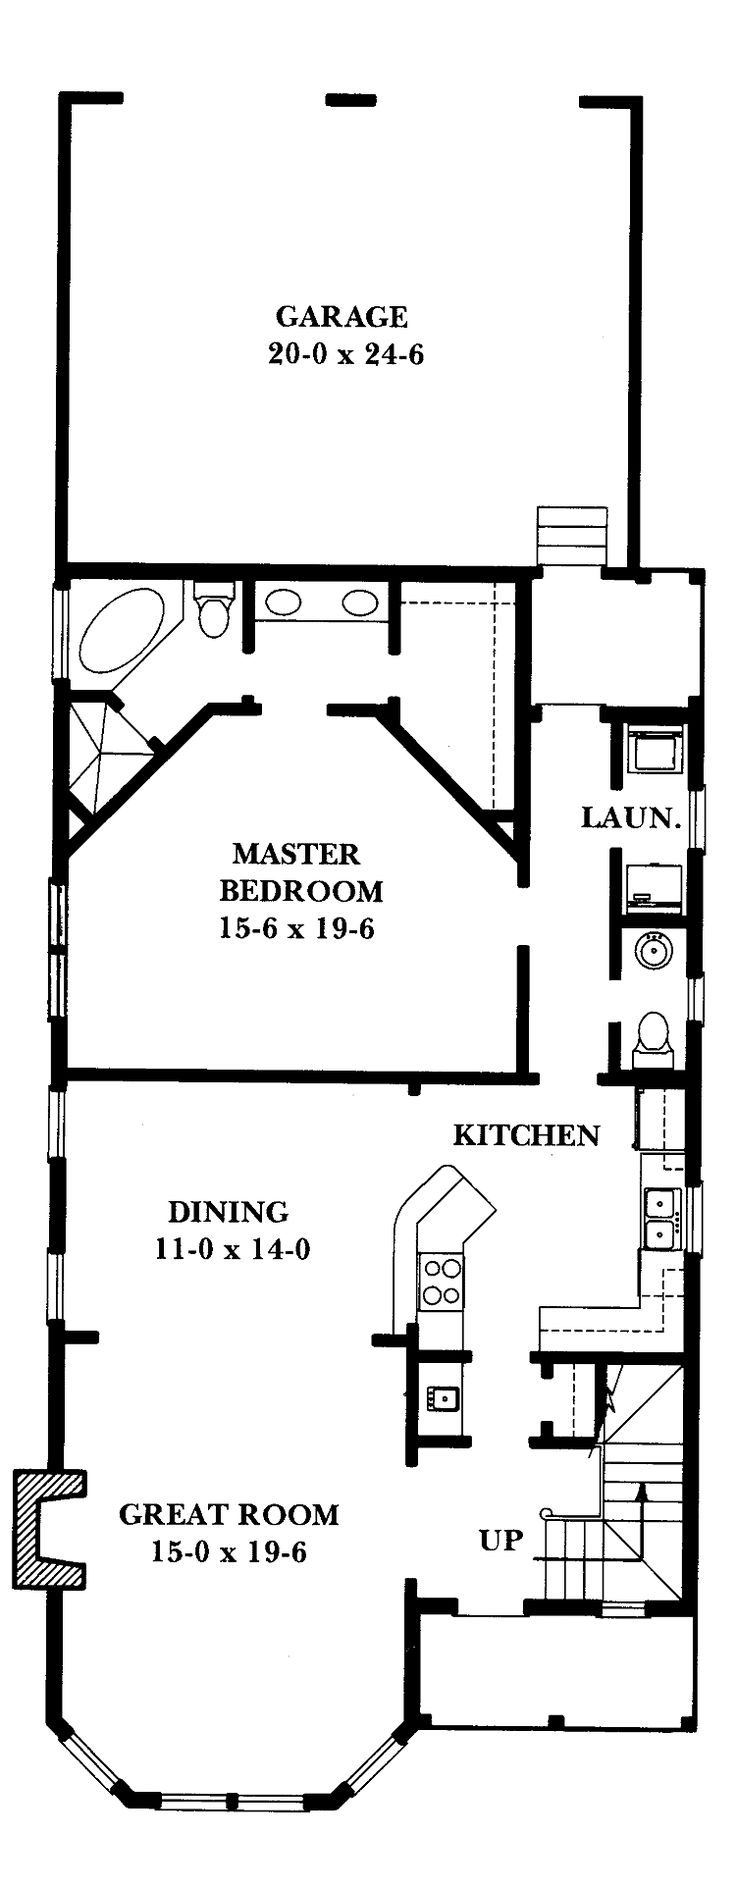 900 Sq Ft Architecture Builder House Plans Designs Small Size And Picture Delectable Builder House Plans